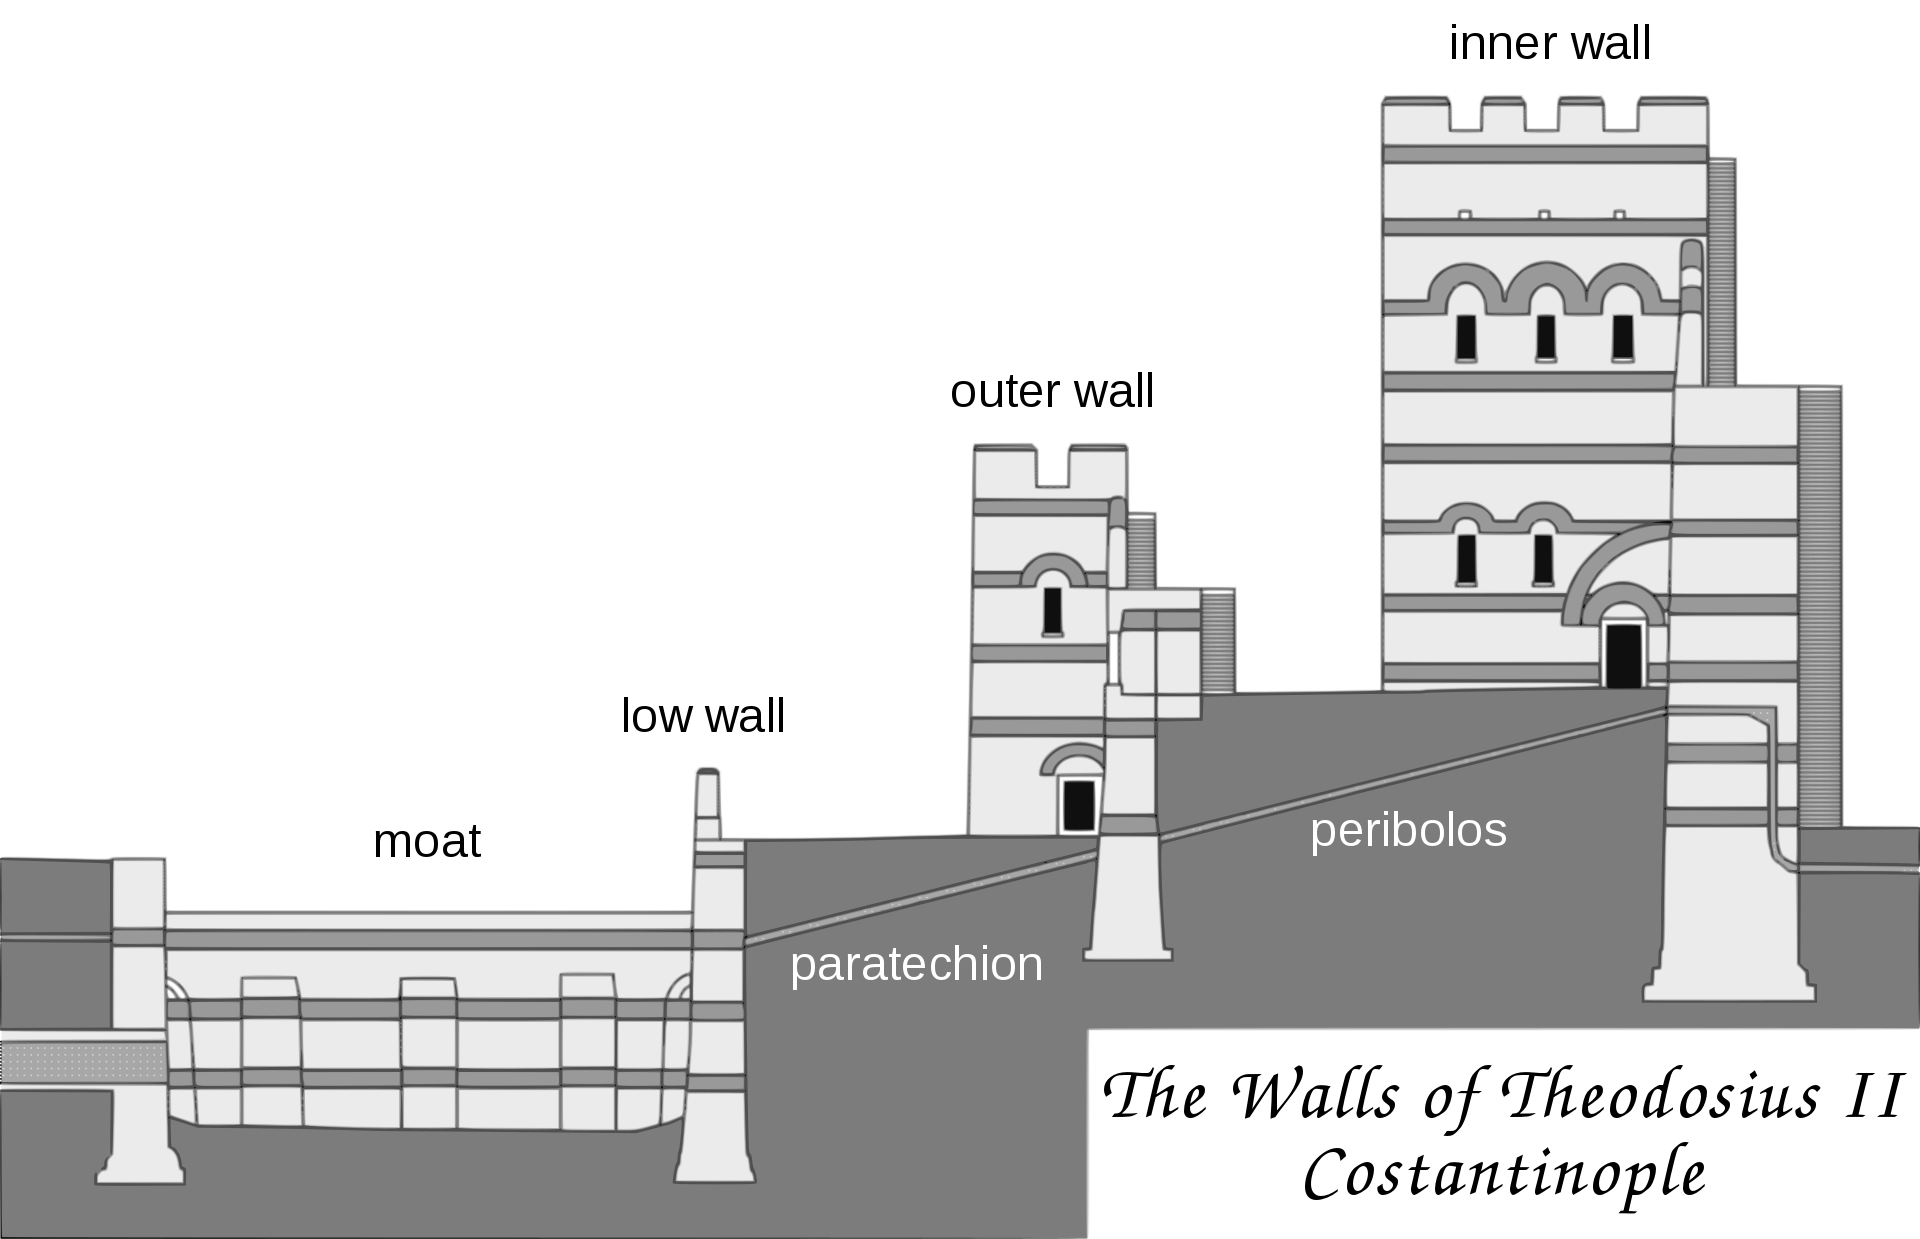 Schematic drawing of constantinople walls